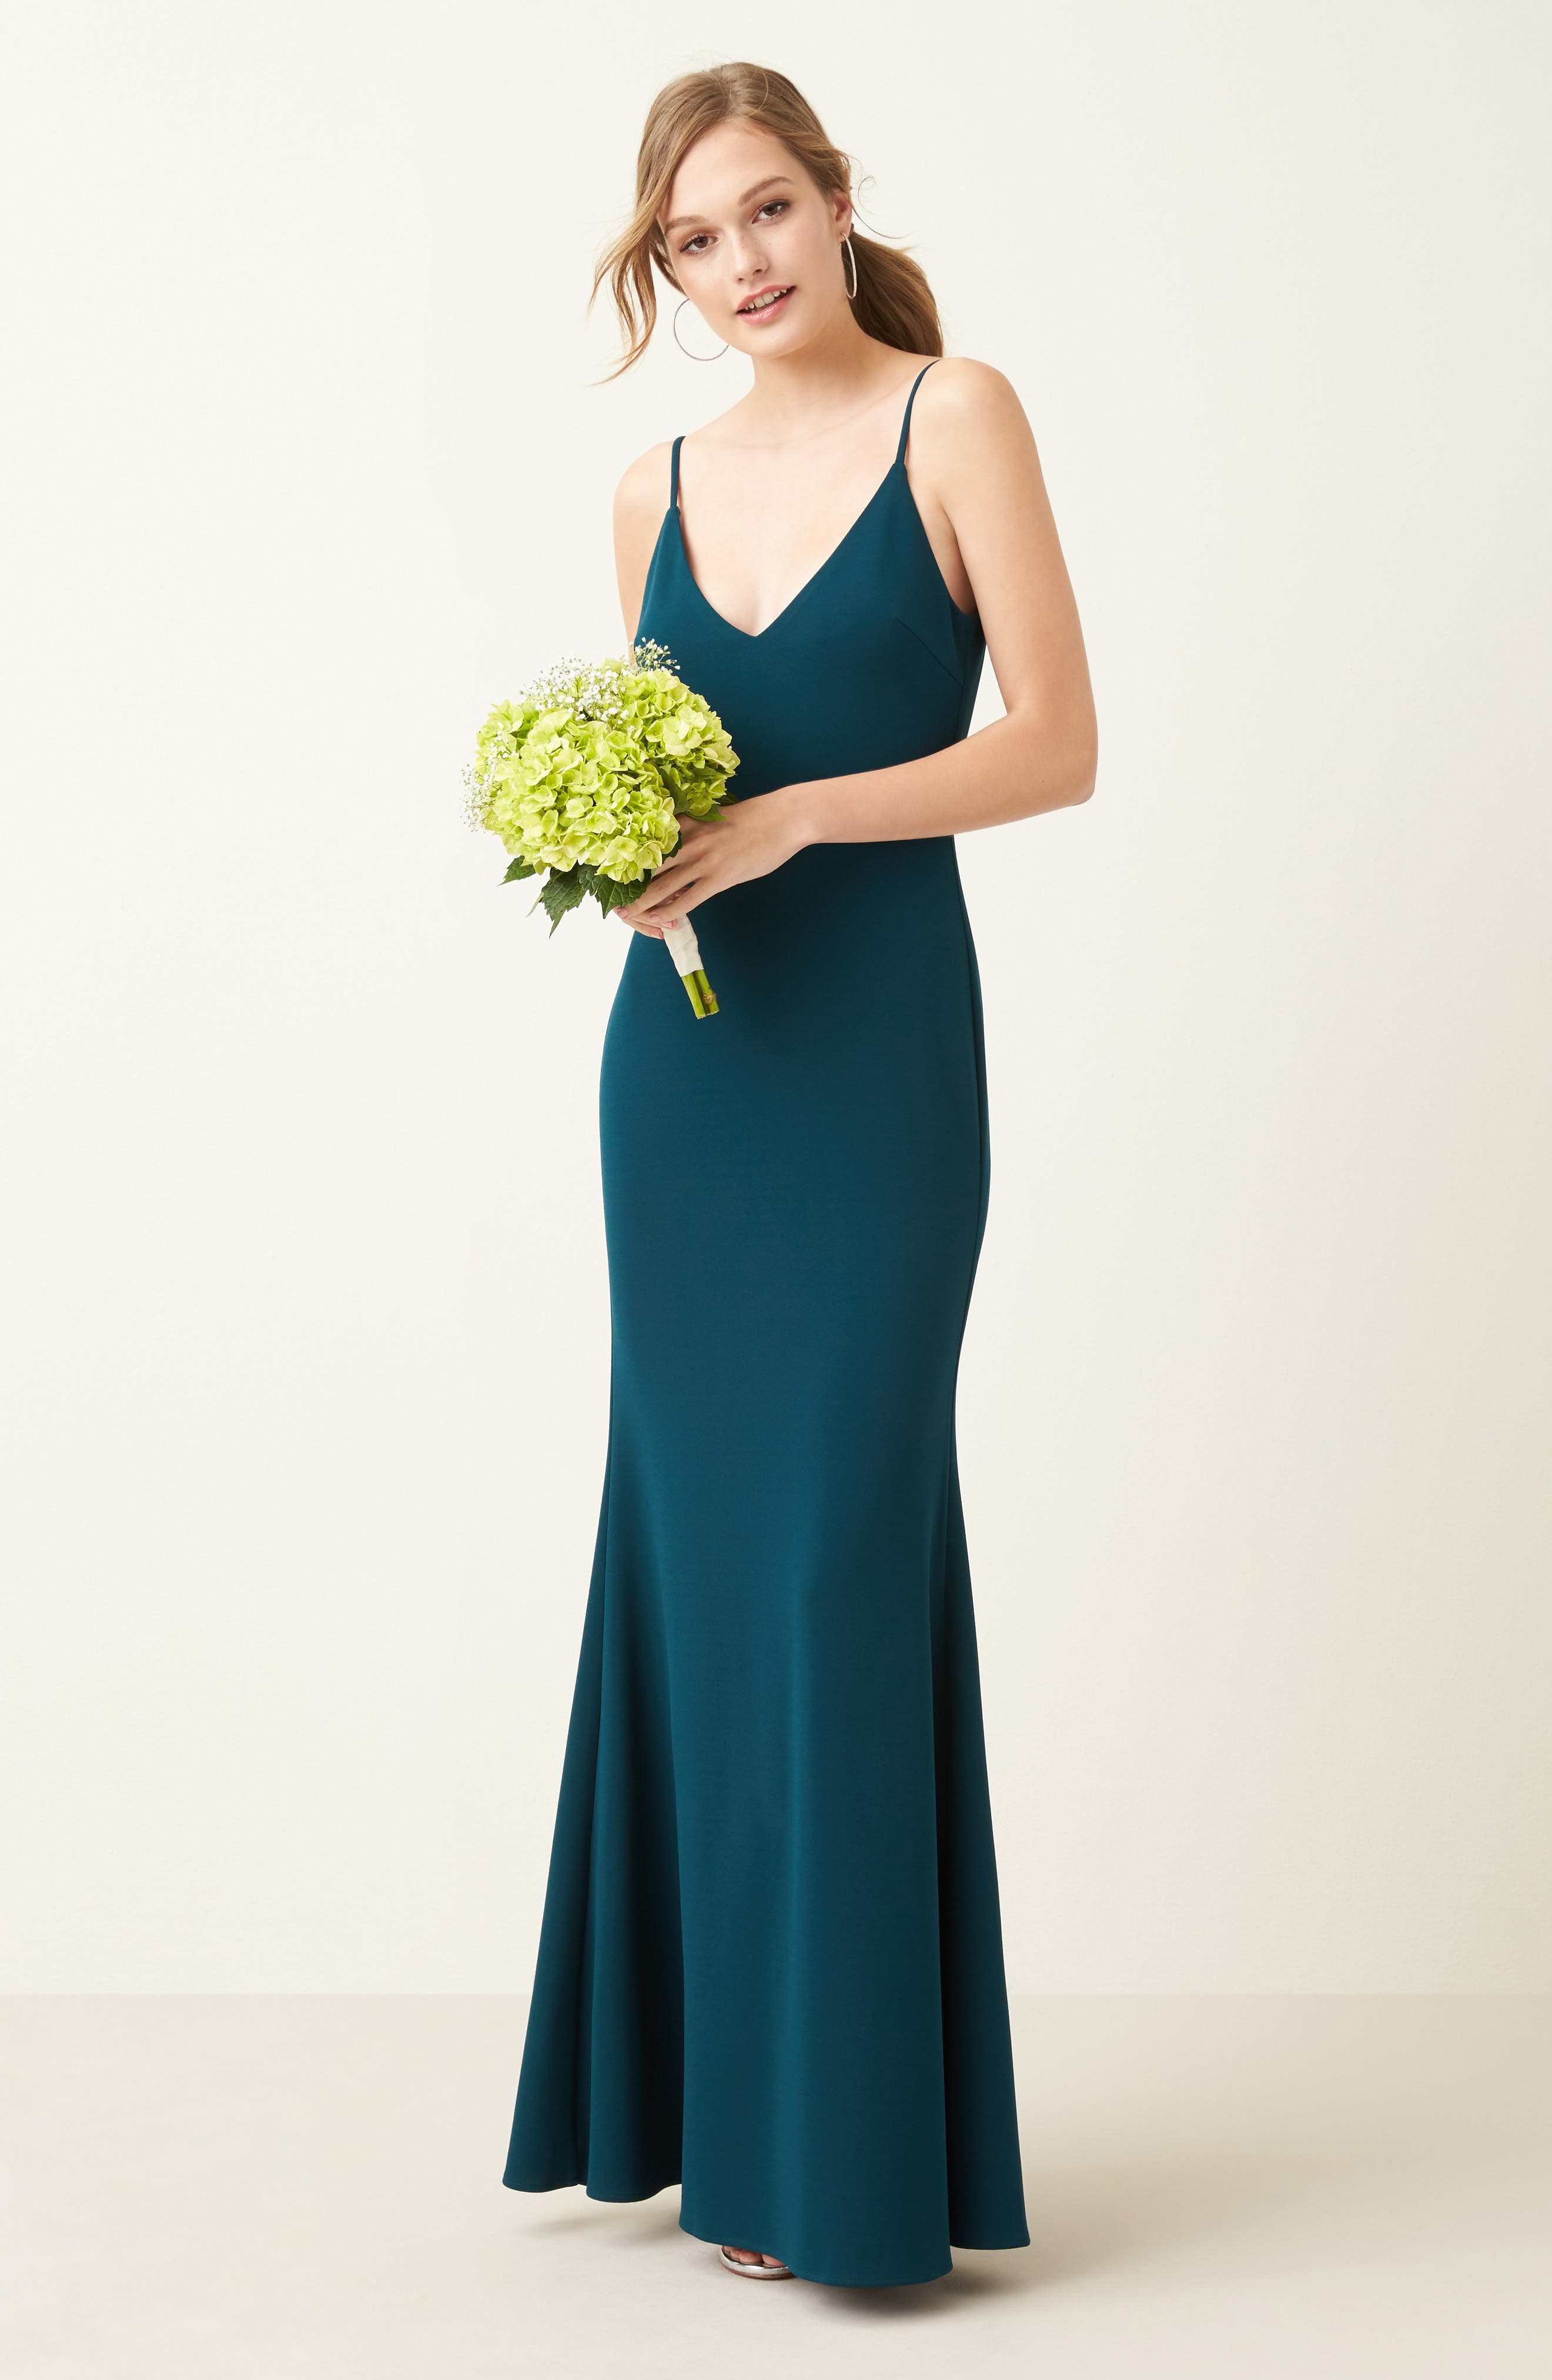 V-Neck Trumpet Gown,                             Alternate thumbnail 8, color,                             EMERALD